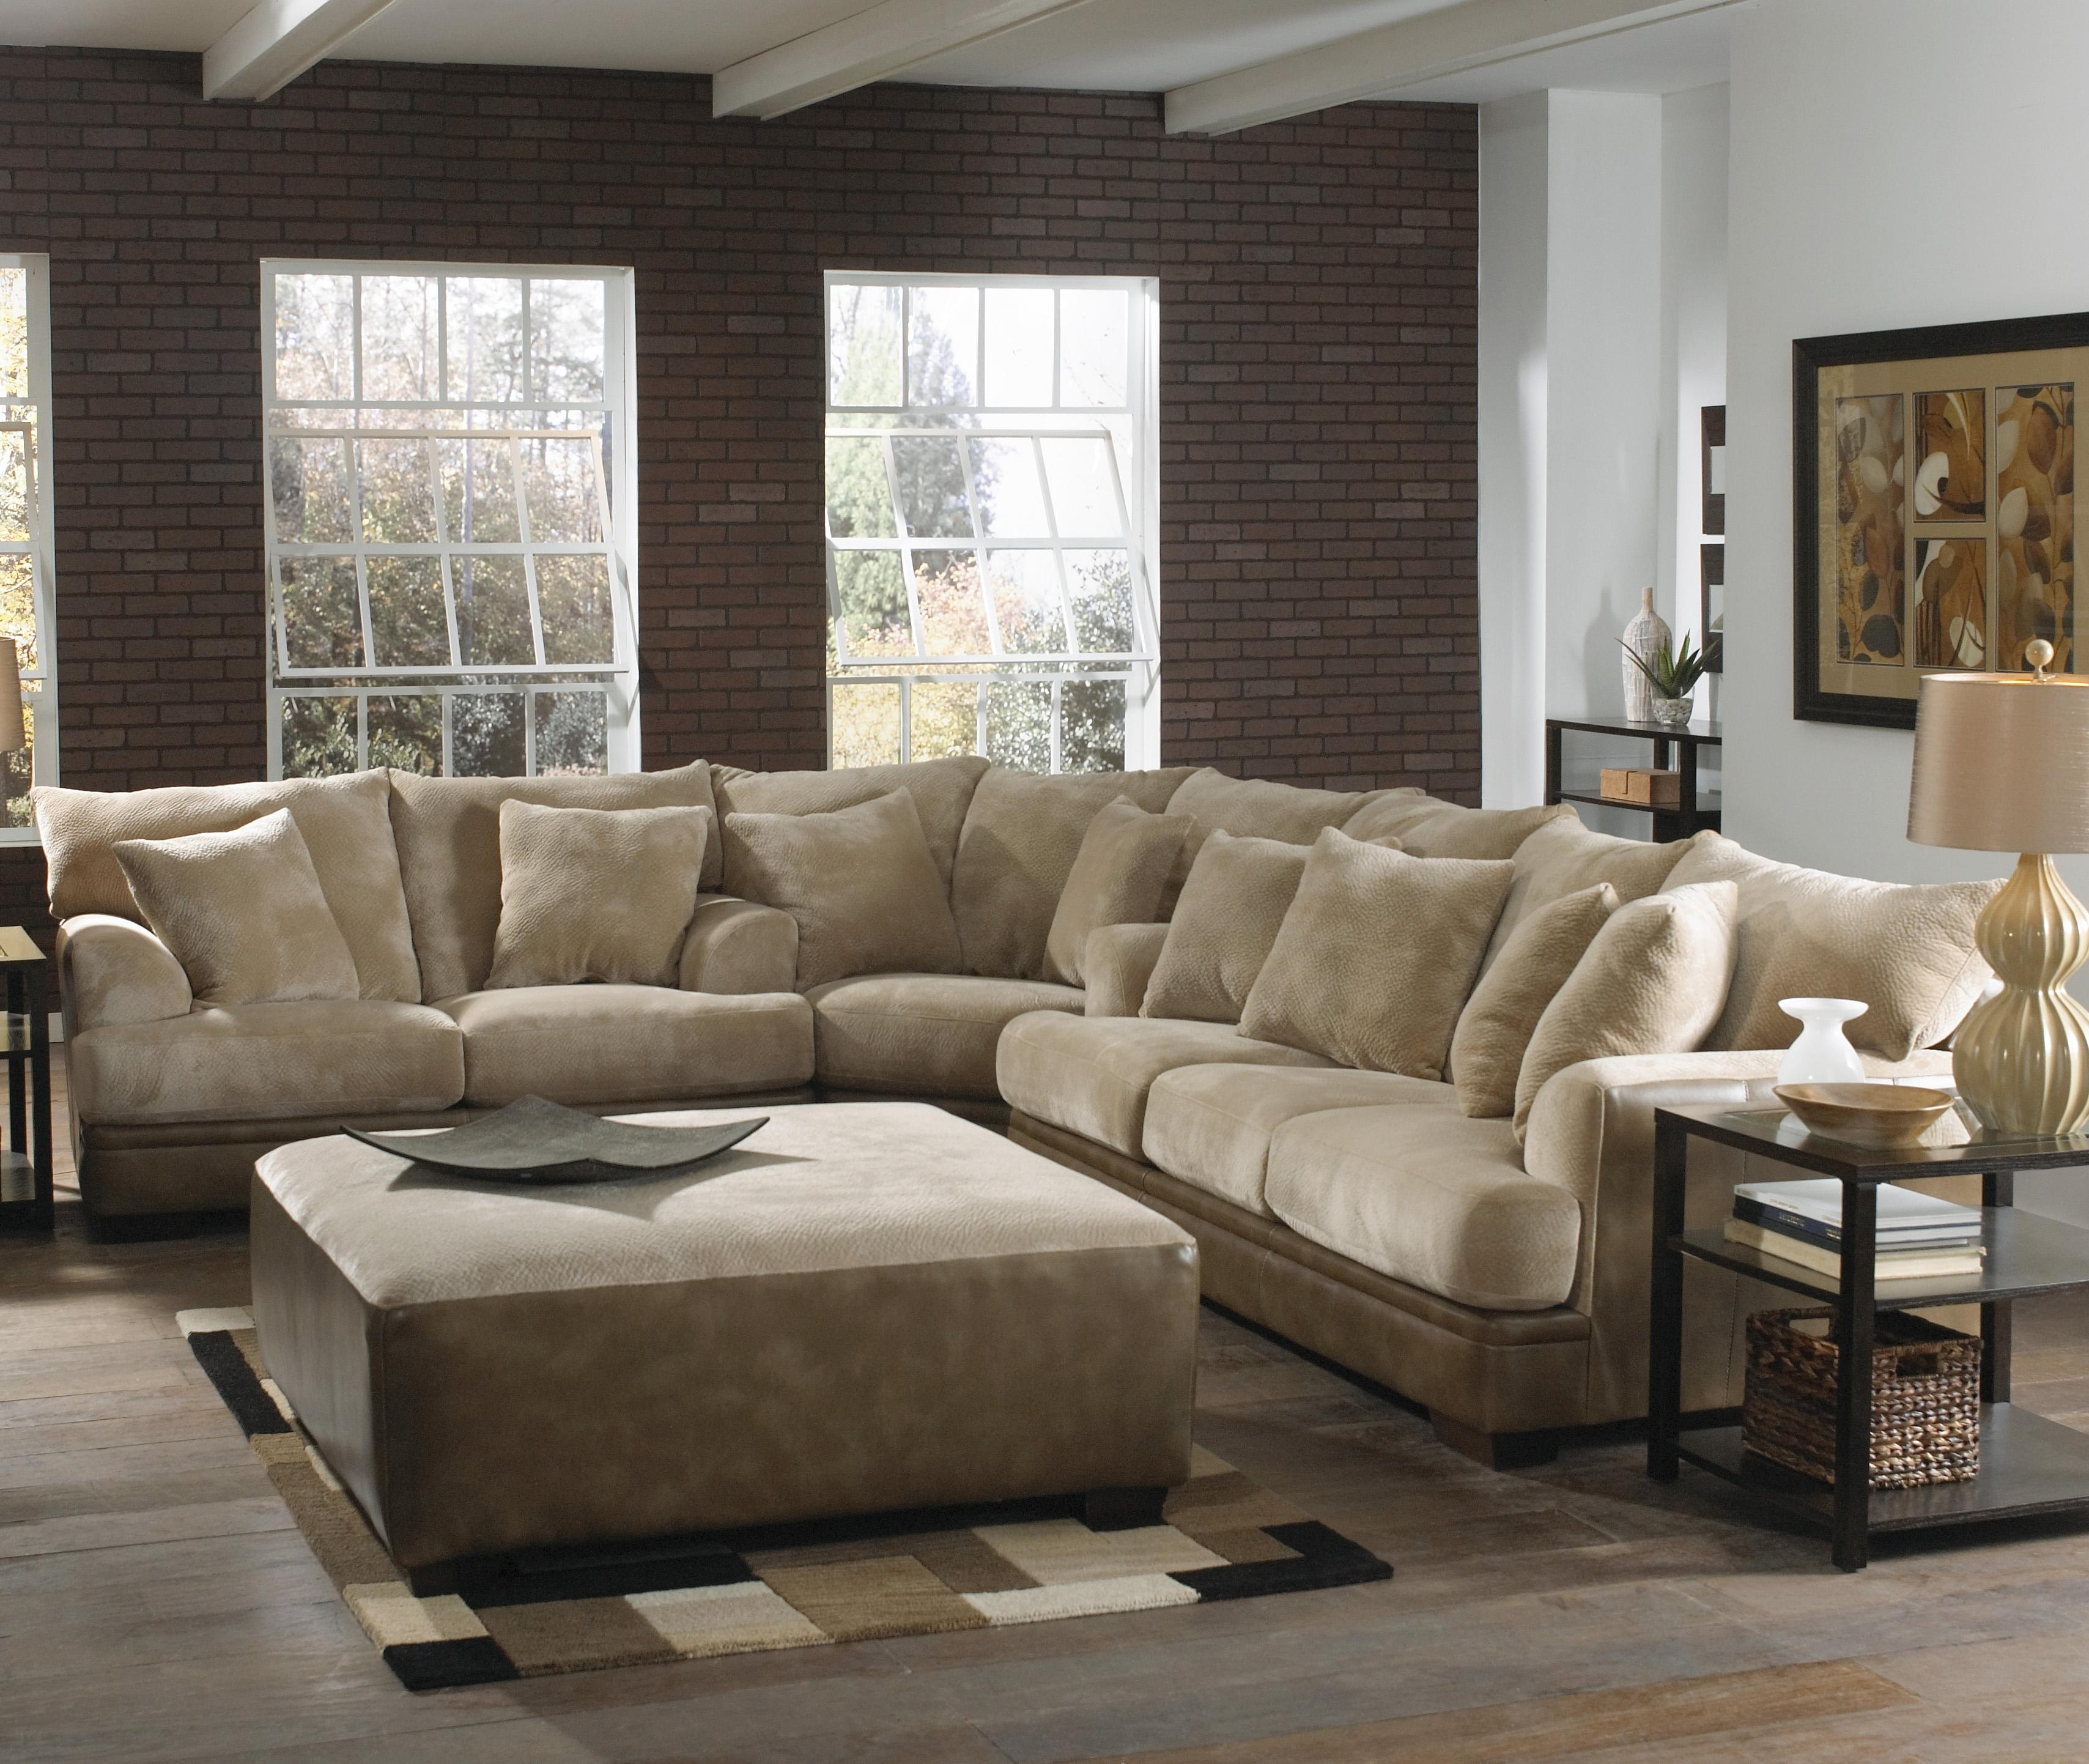 Most Up To Date Ottawa Sectional Sofas Intended For Furniture : Family Room Sectional Sofa Novogratz Vintage Tufted (View 6 of 20)